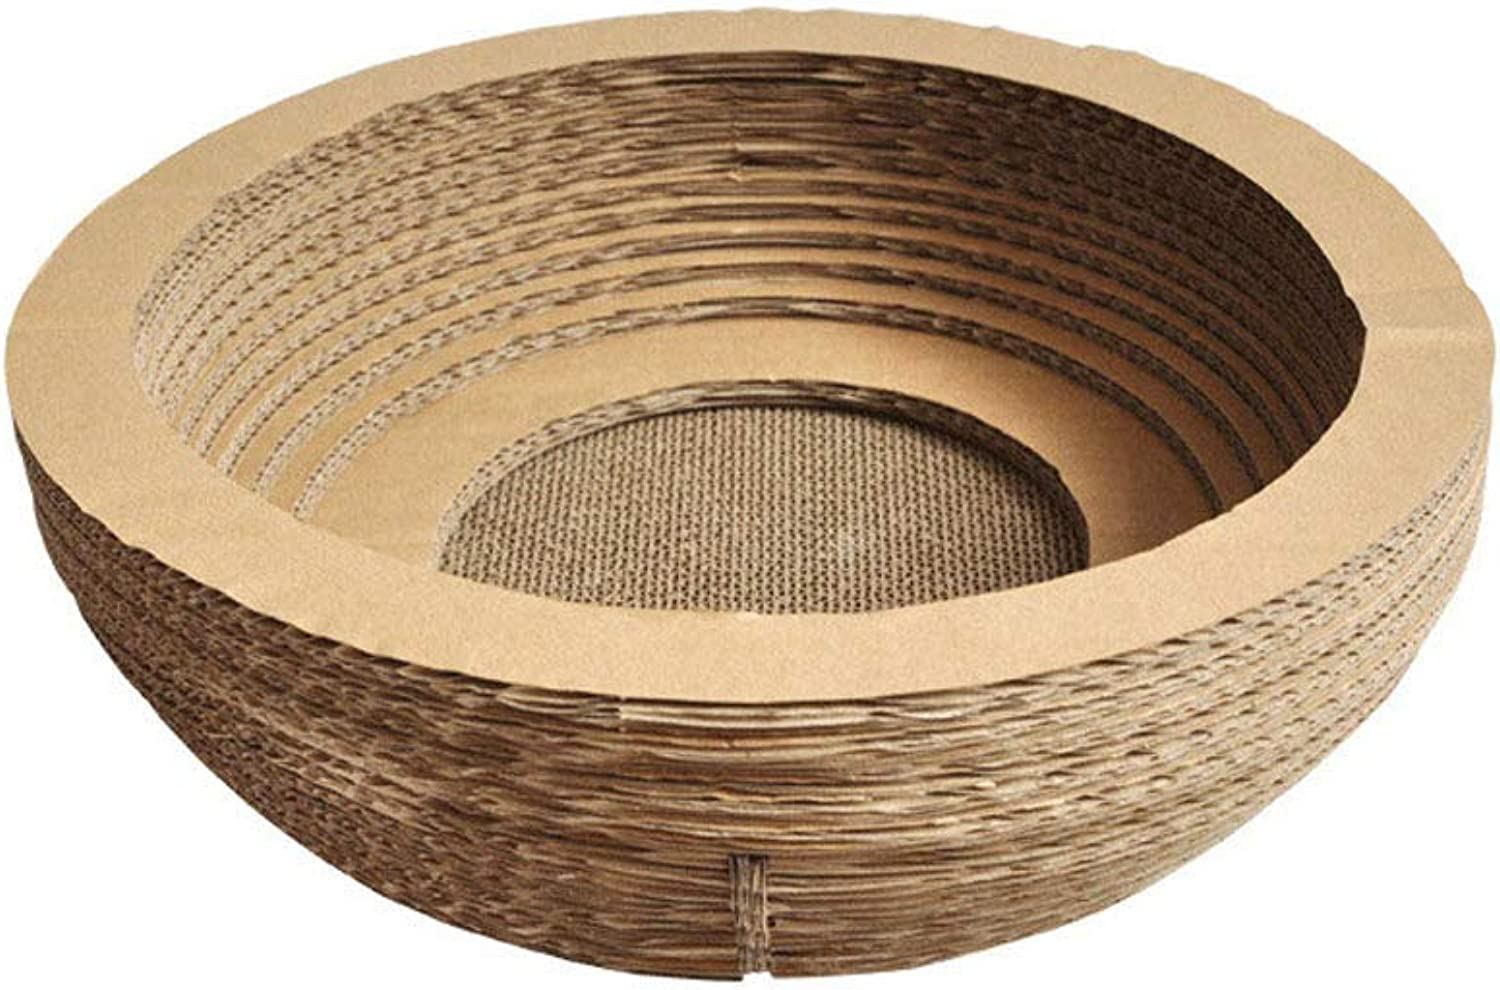 Cat Scratch Board Pad,Large Space Bowl Type Toy,Kitten Corrugated Paper Pad Cats Grinding Nail Scraper Mat Mattress Nest Cat Scratcher for Grinding Claws Body Massage Rest Scratch